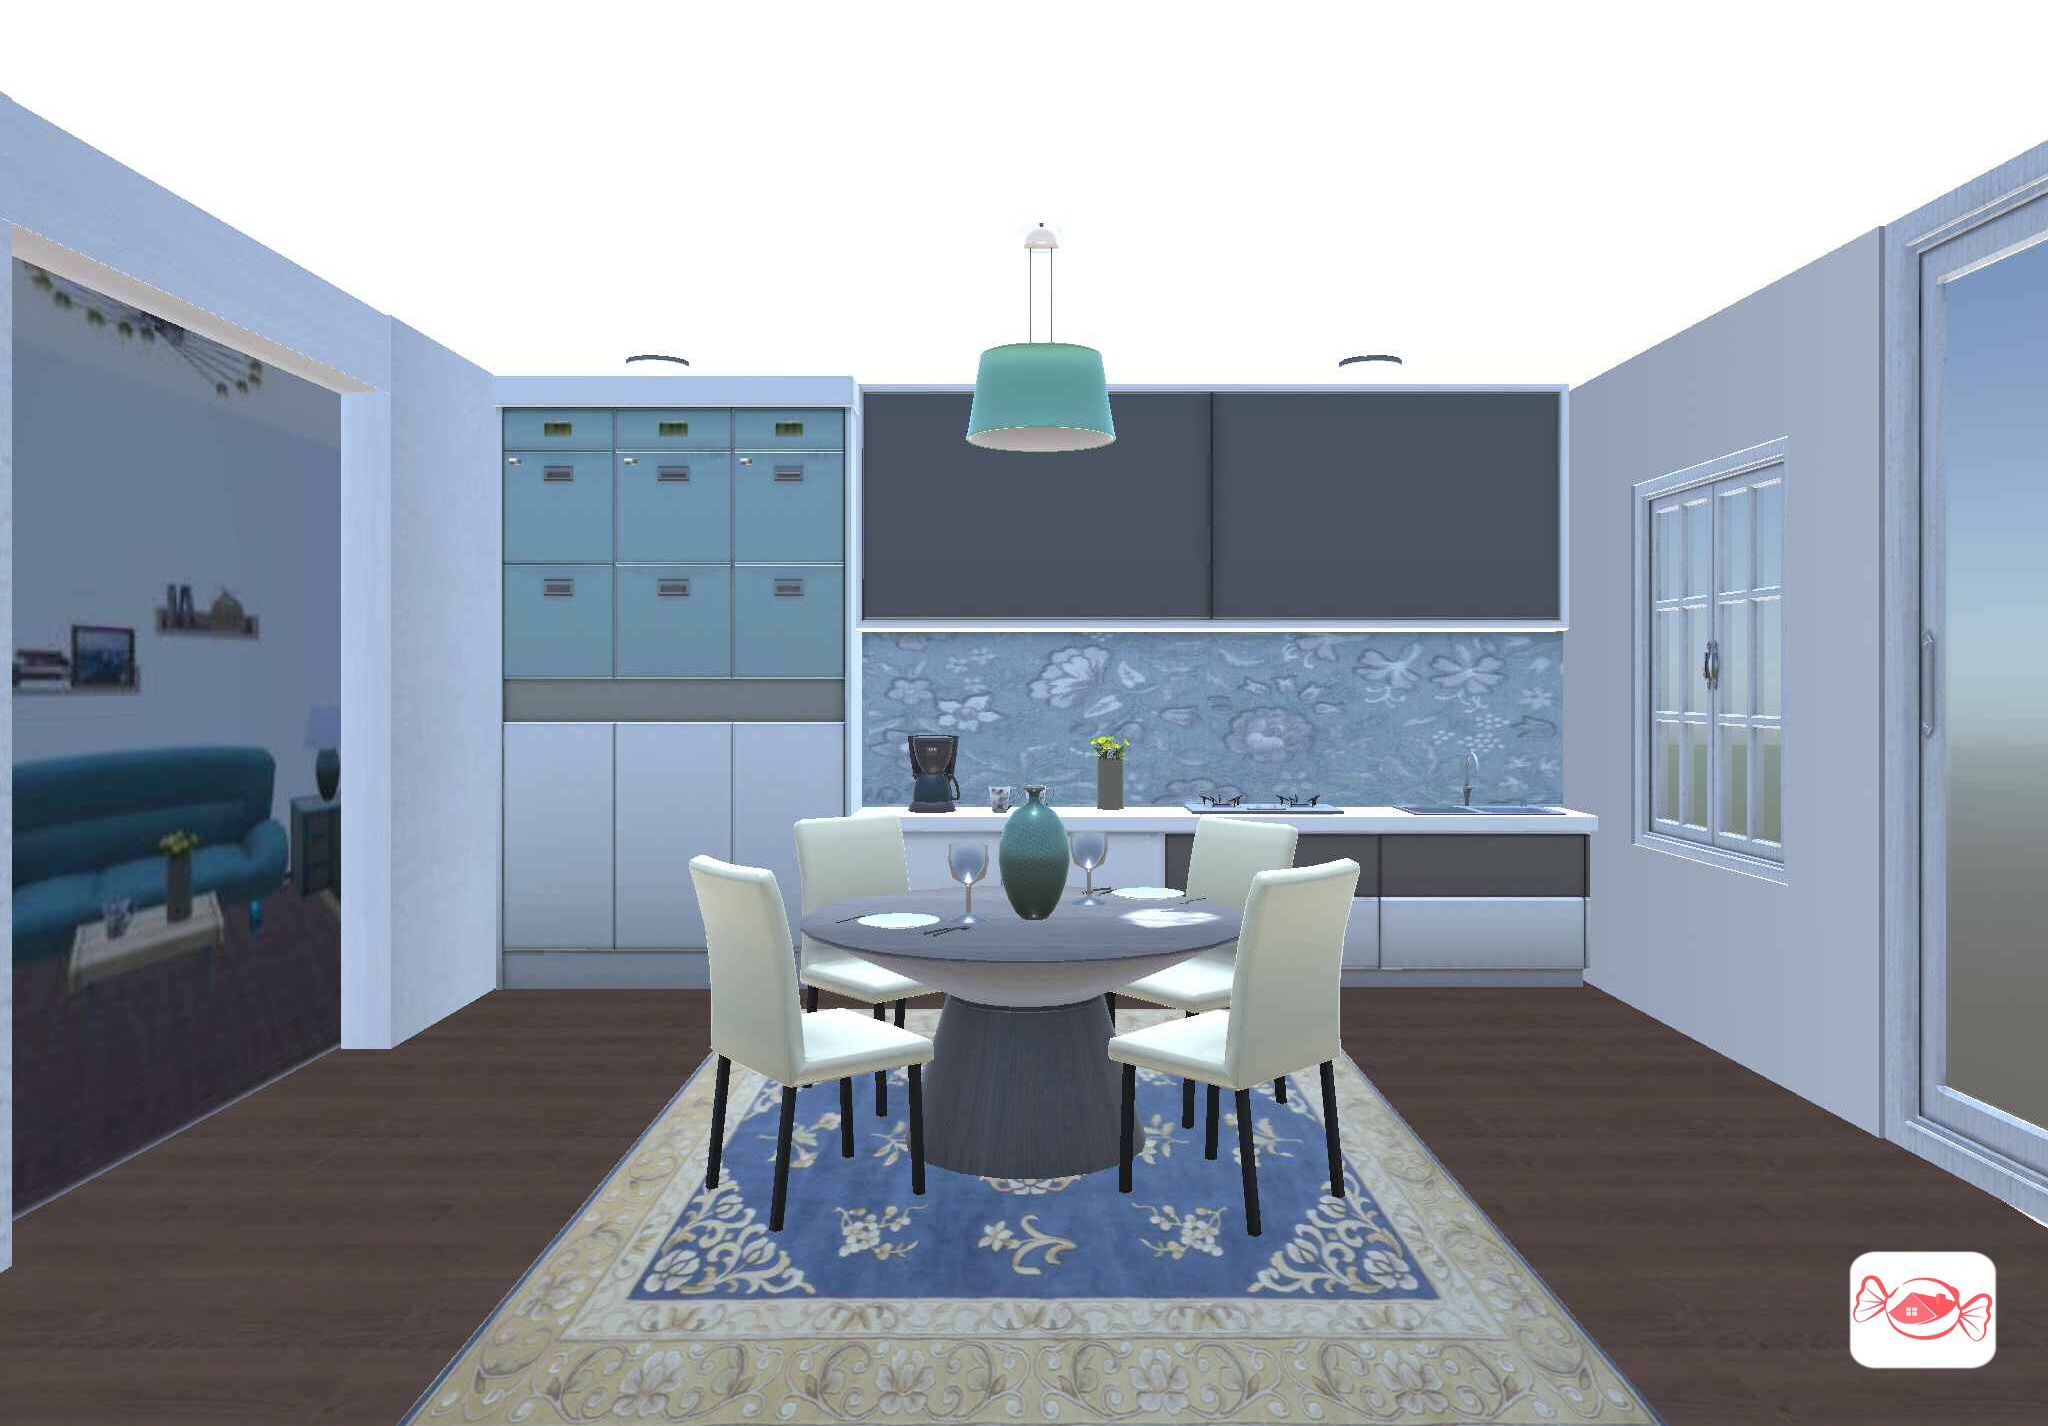 Dining room with kitchenette created home sweet  app also rh pinterest